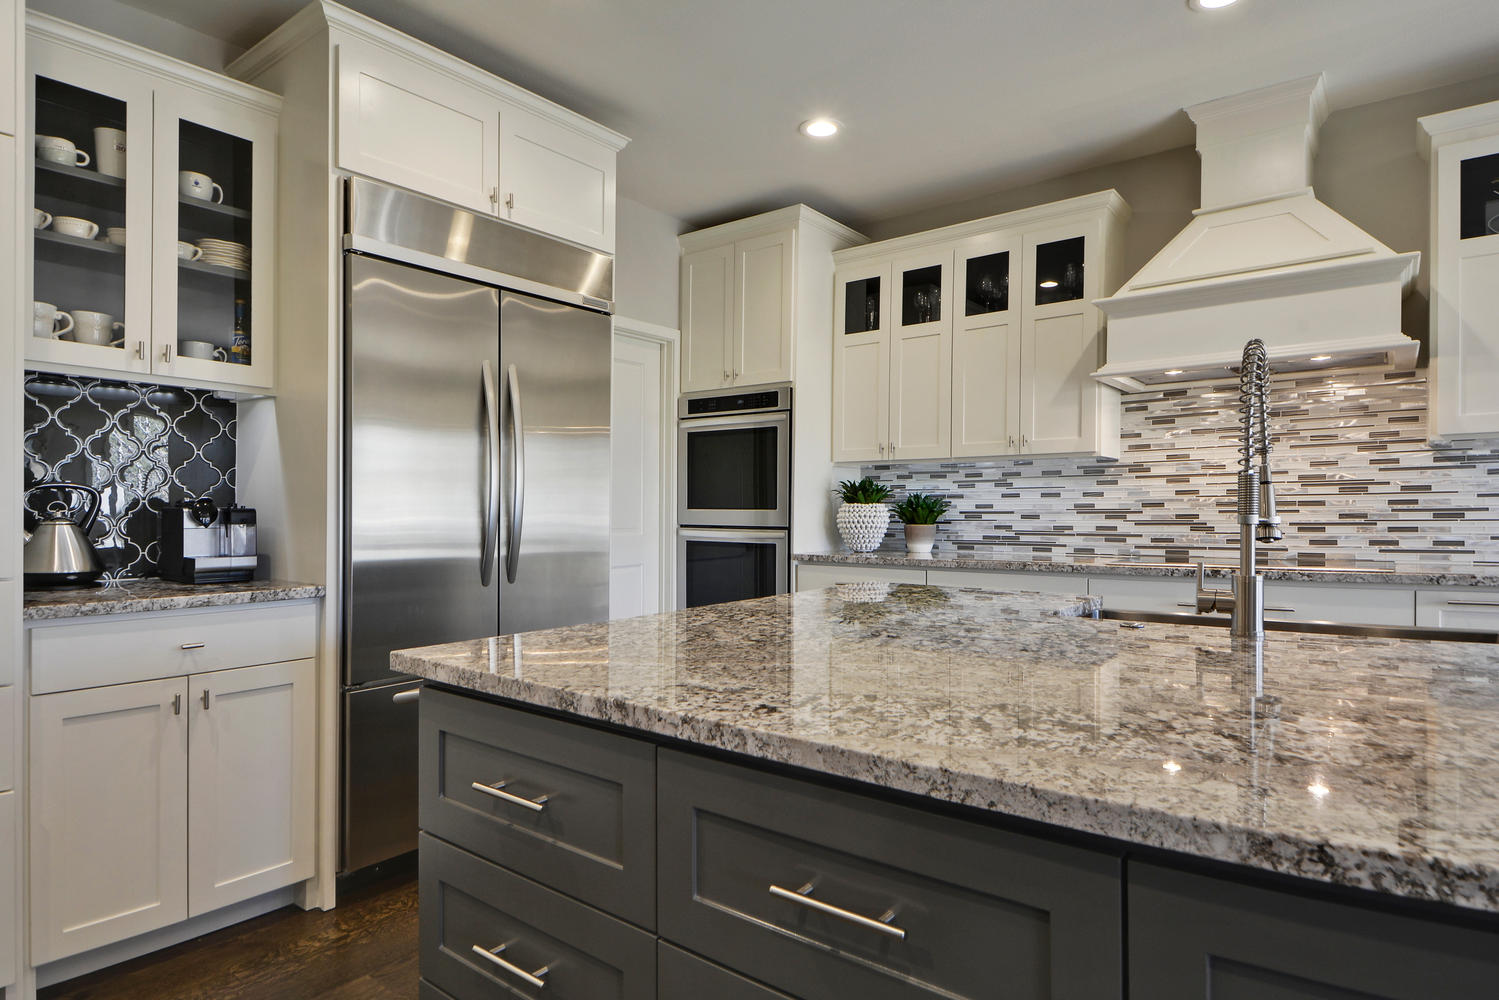 Kitchen design with gray and white tile